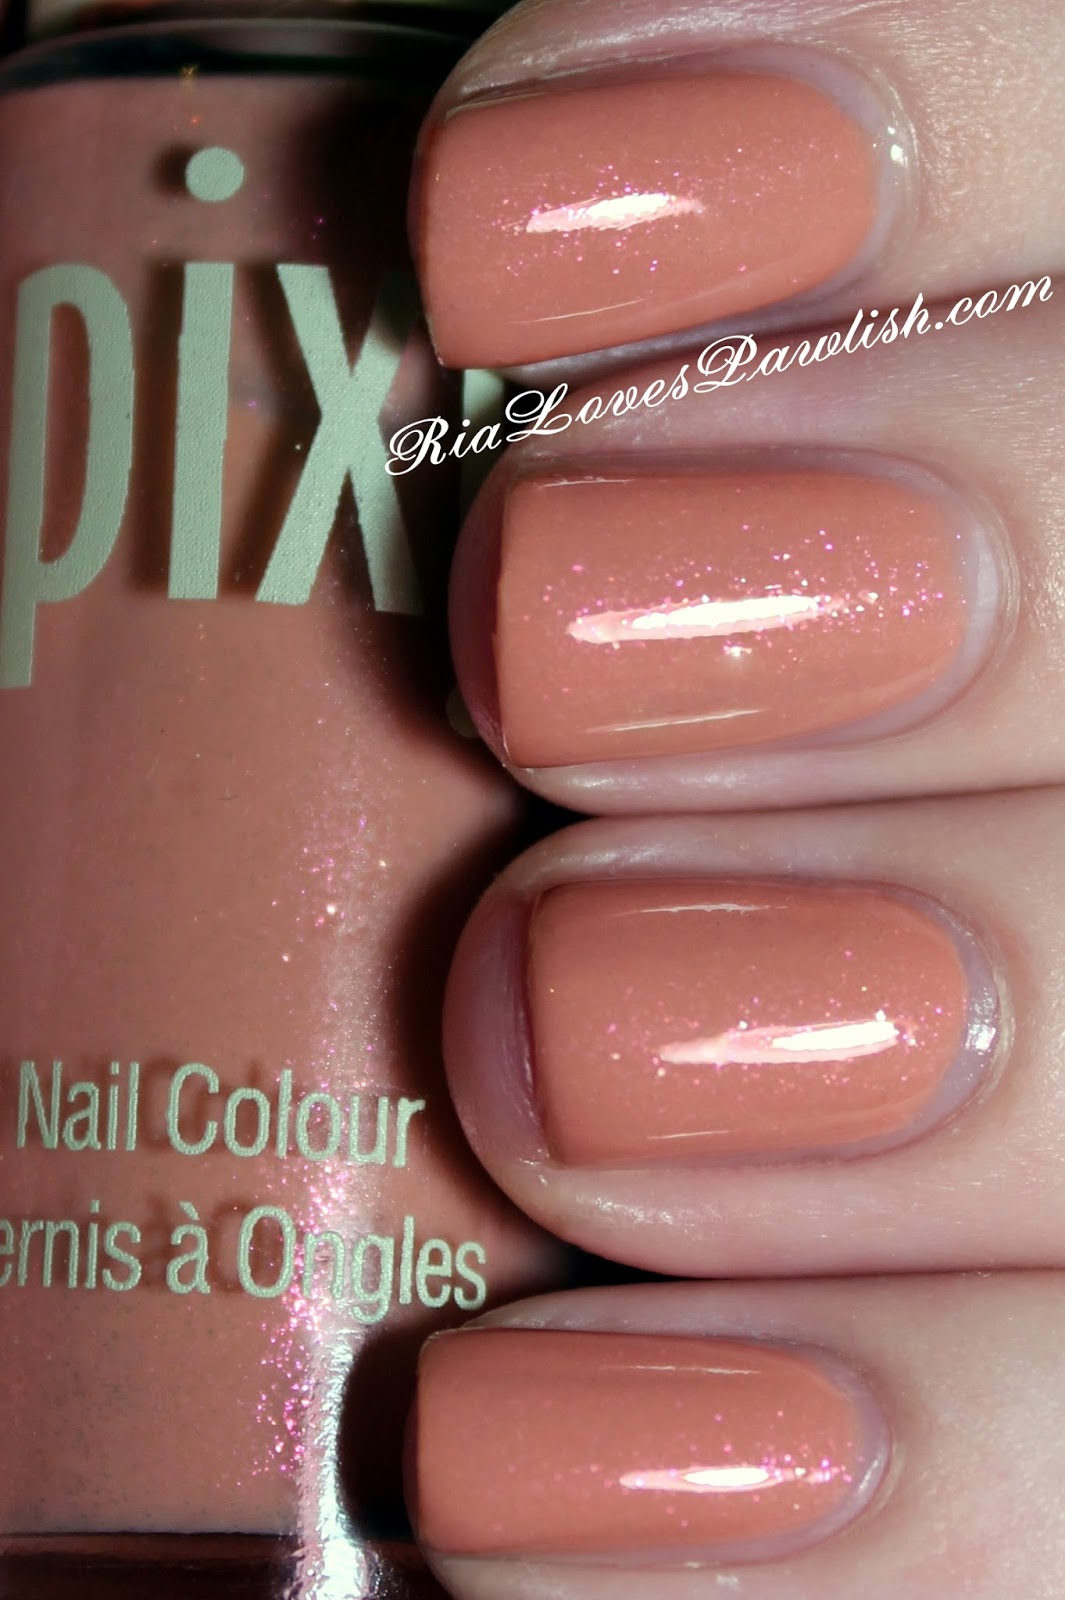 Ria Loves Pawlish: Pixi Color of the Month... Almond Glow